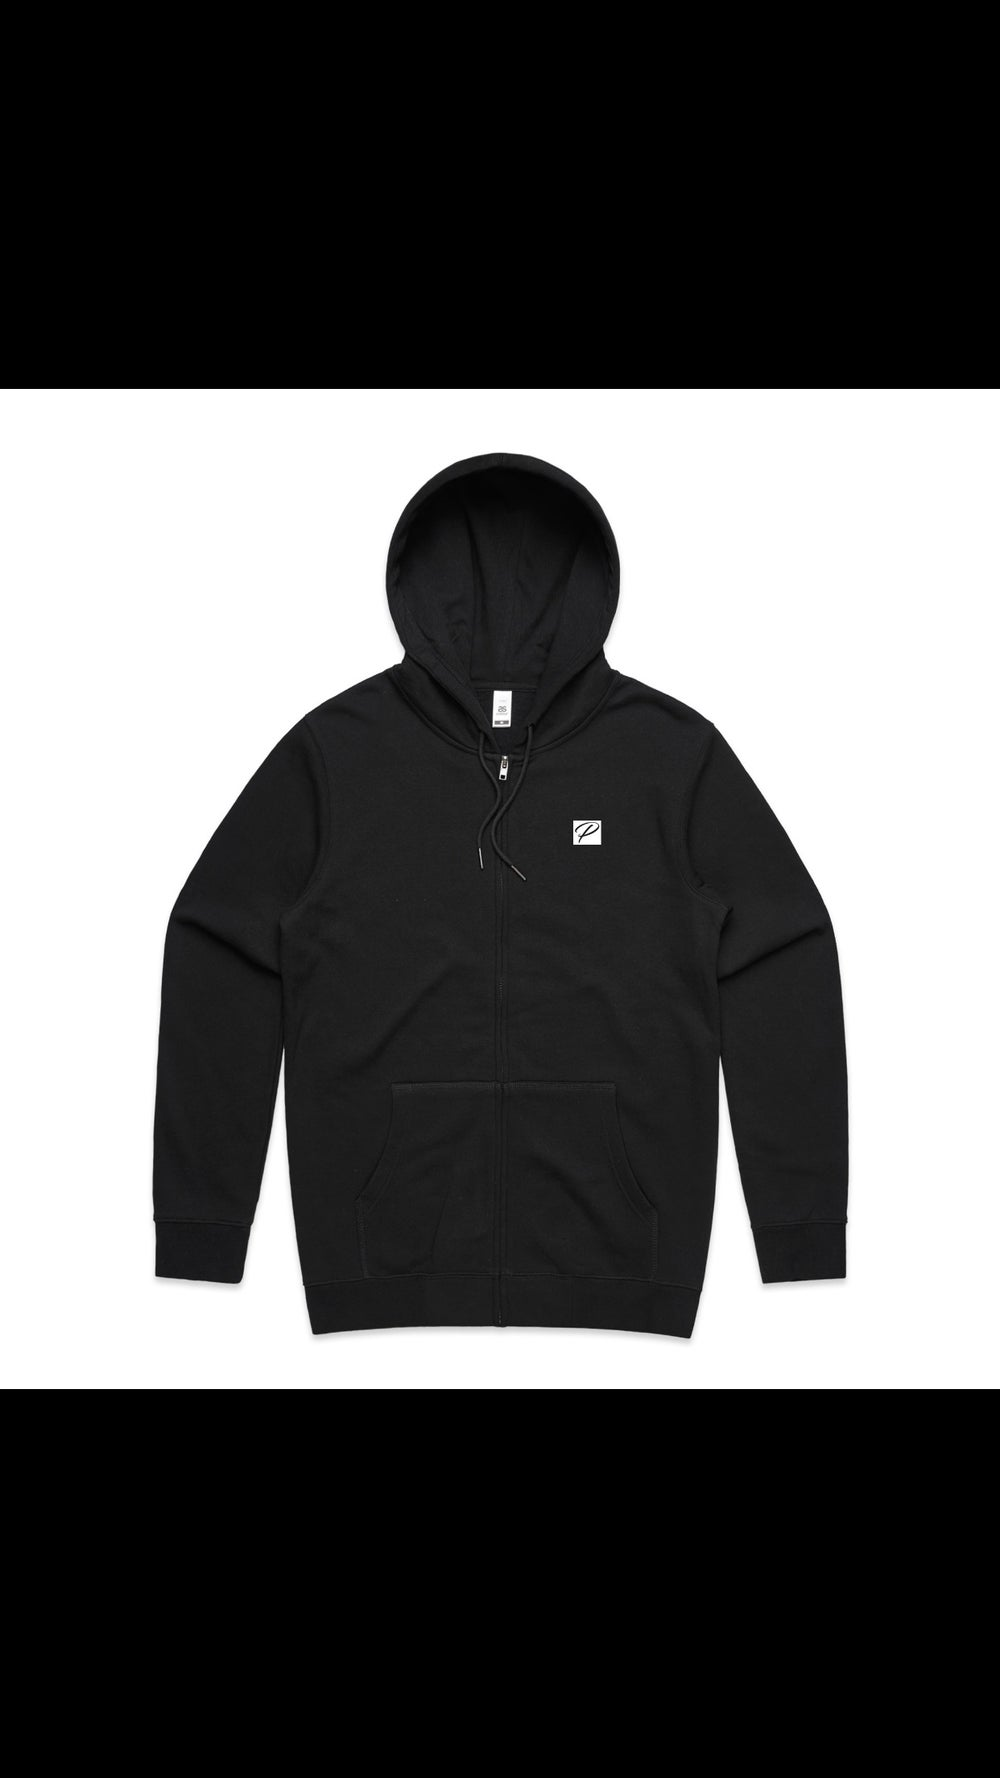 NEW BRAND PRODIGY BLACK ZIP UP HOODIE P PATCH EMBROIDERED